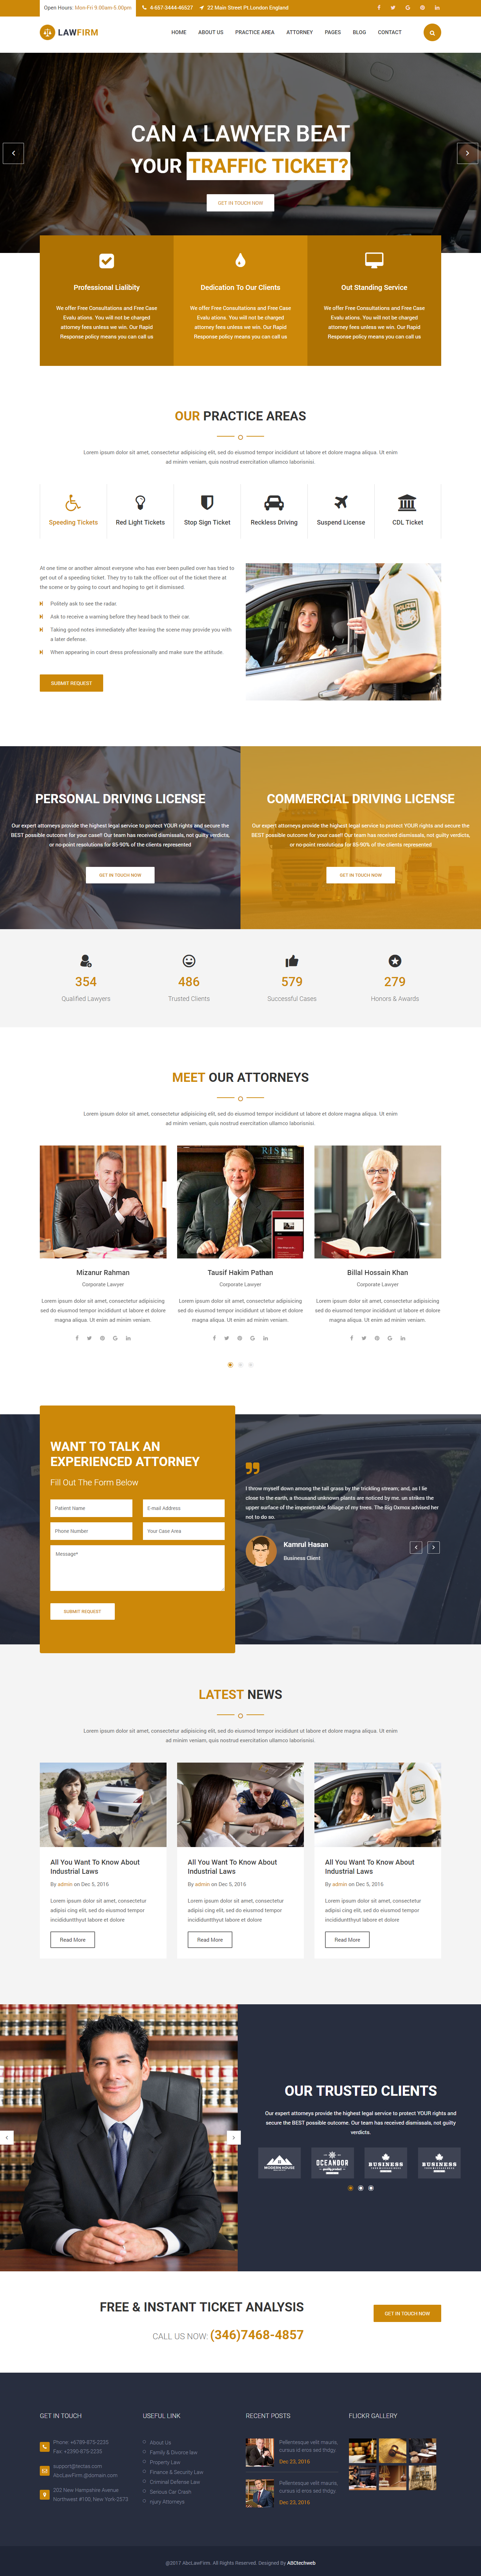 Law Firm Lawyer Law Office Injury Law Defense Law Insurance Law Html5 Template Law Firm Insurance Law Legal Officer